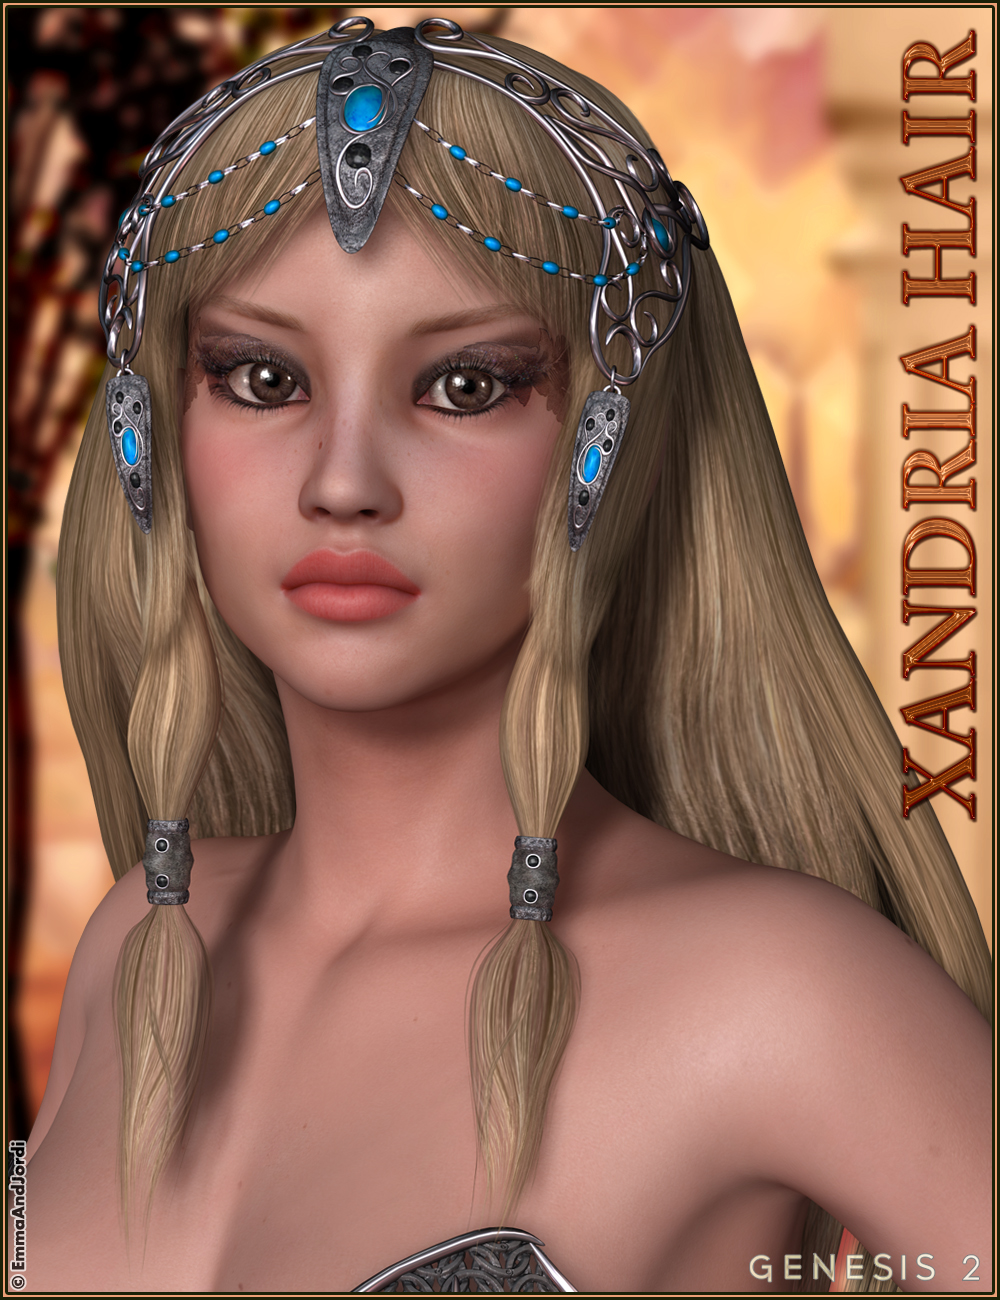 Xandria Hair by: EmmaAndJordi, 3D Models by Daz 3D